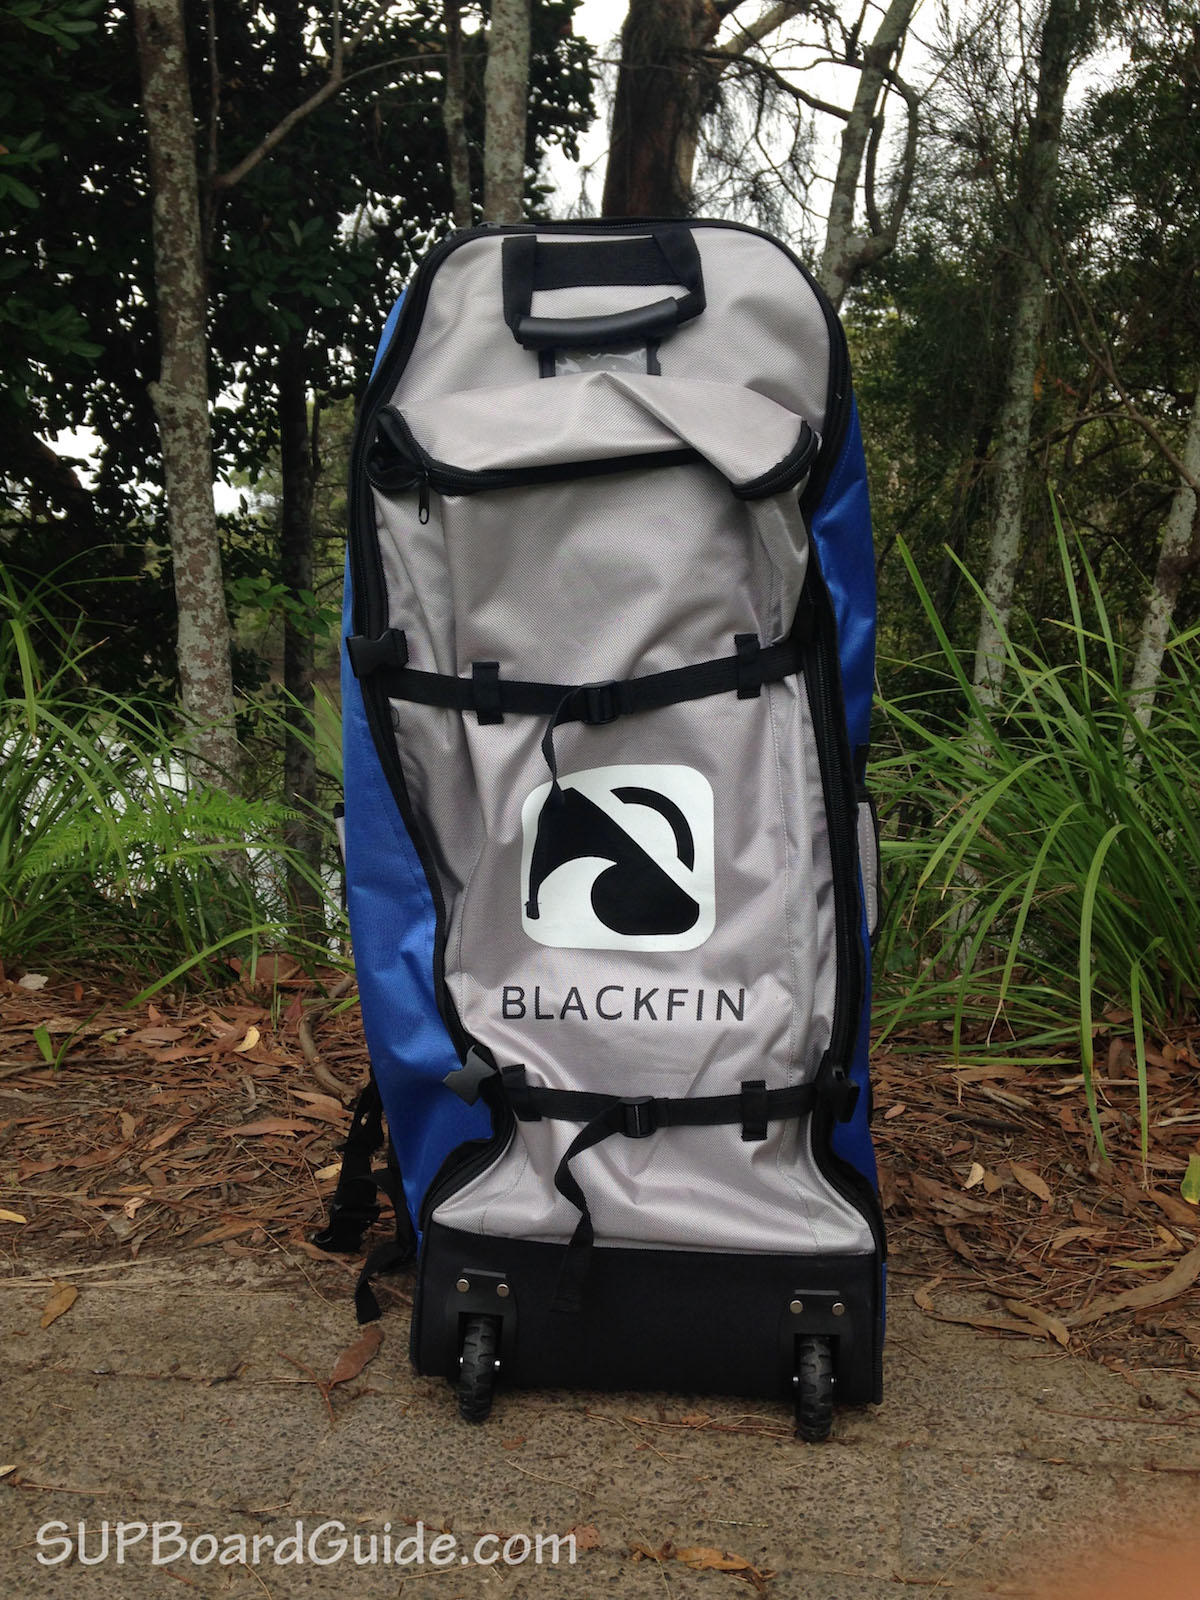 New Blackfin Backpack